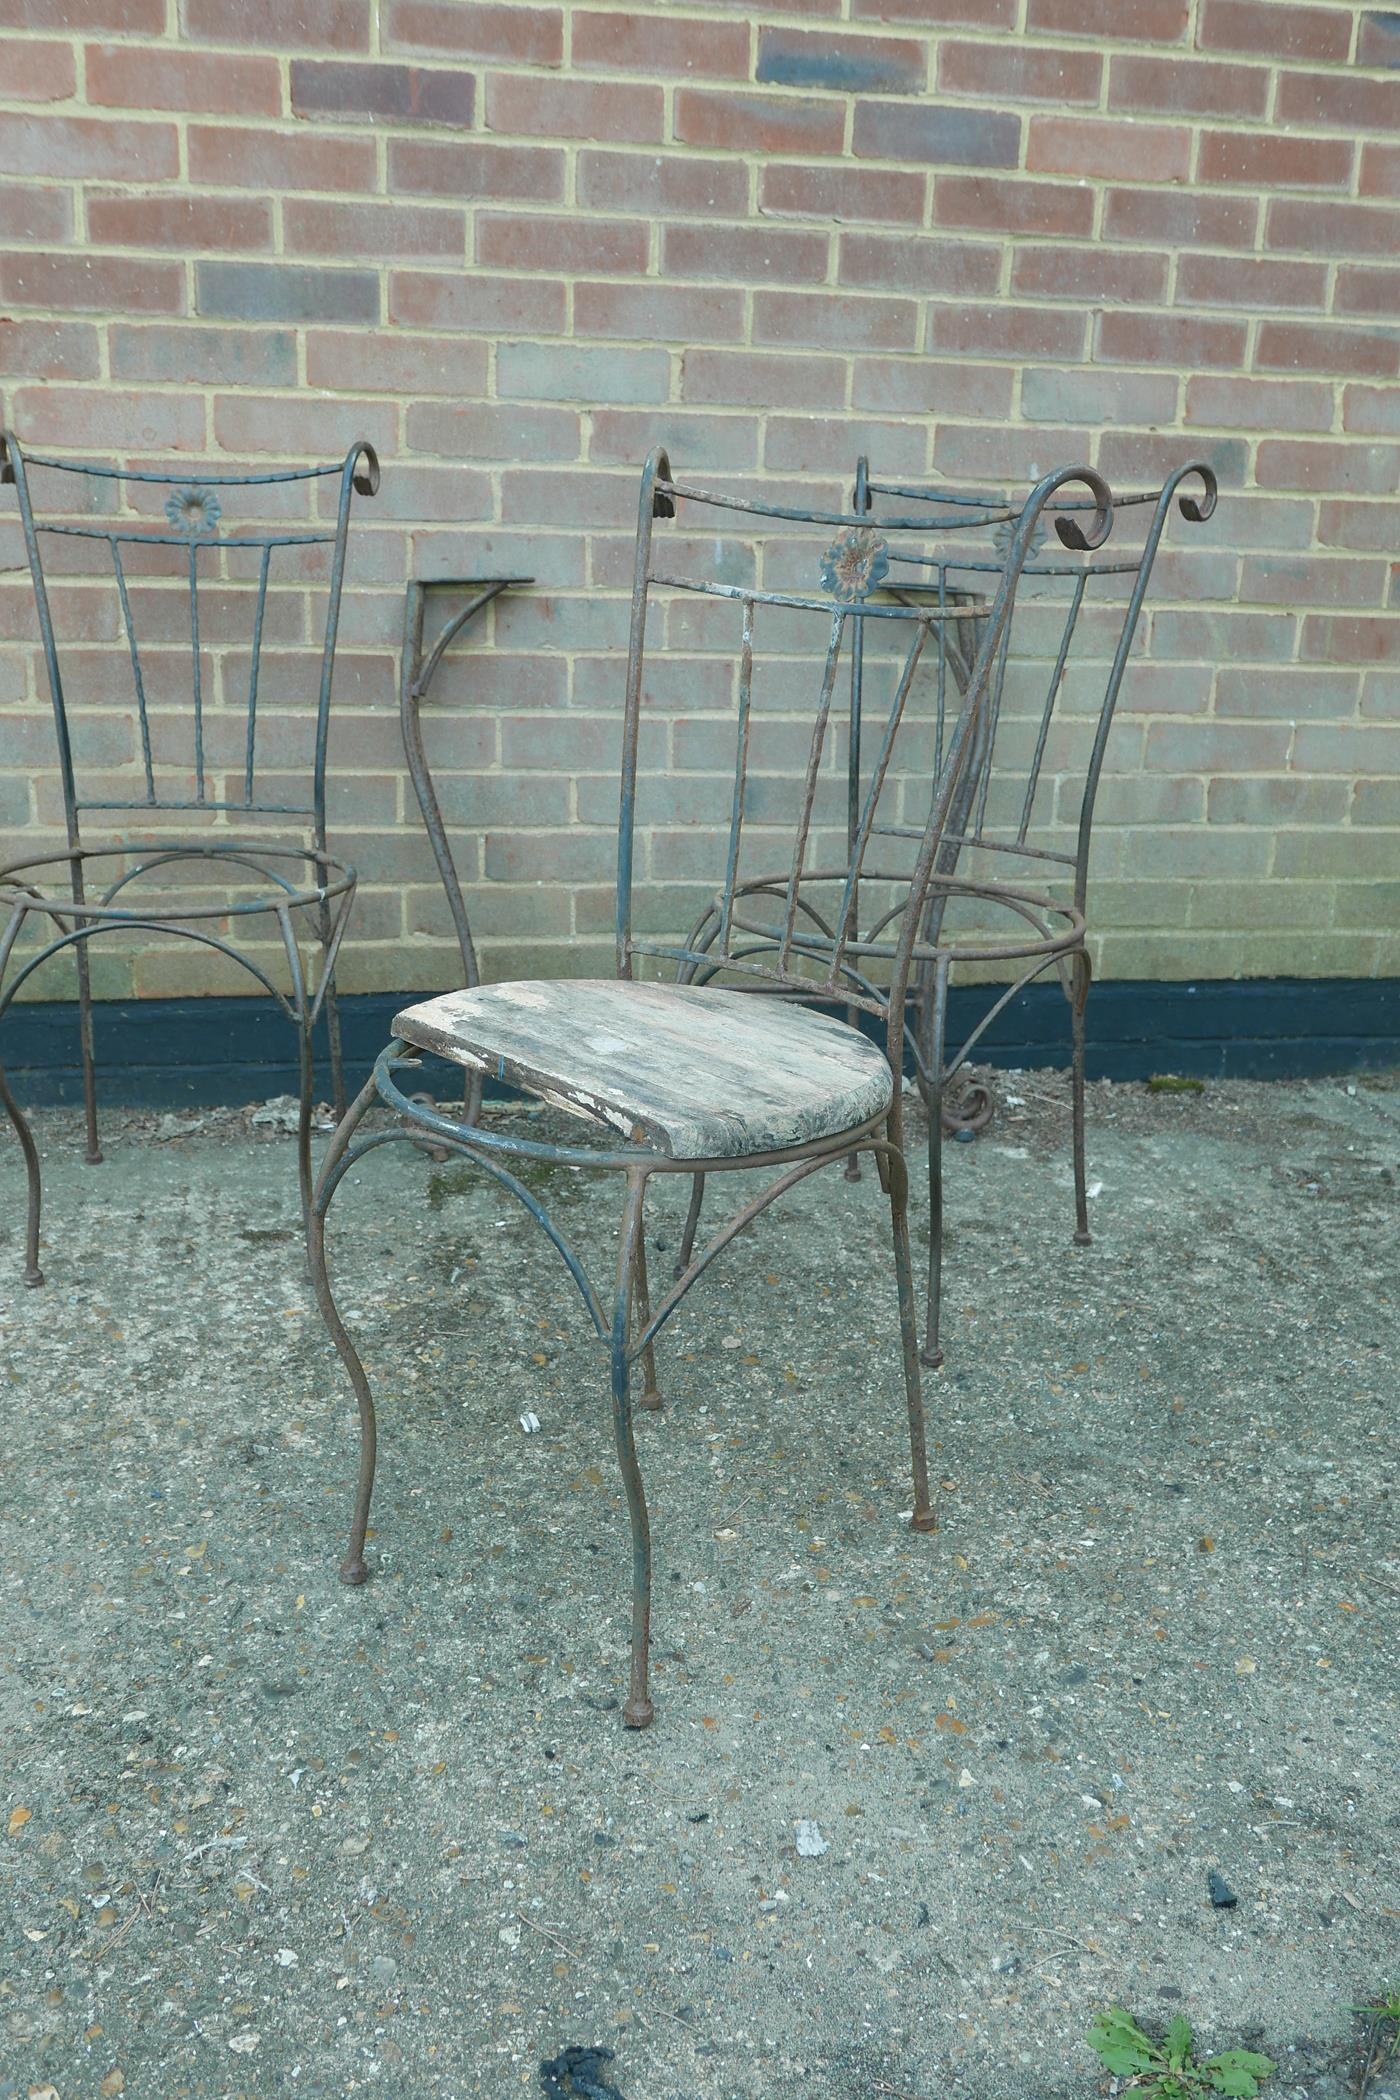 A set of six wrought iron garden chairs and matching table base, A/F, lack seats - Image 2 of 4